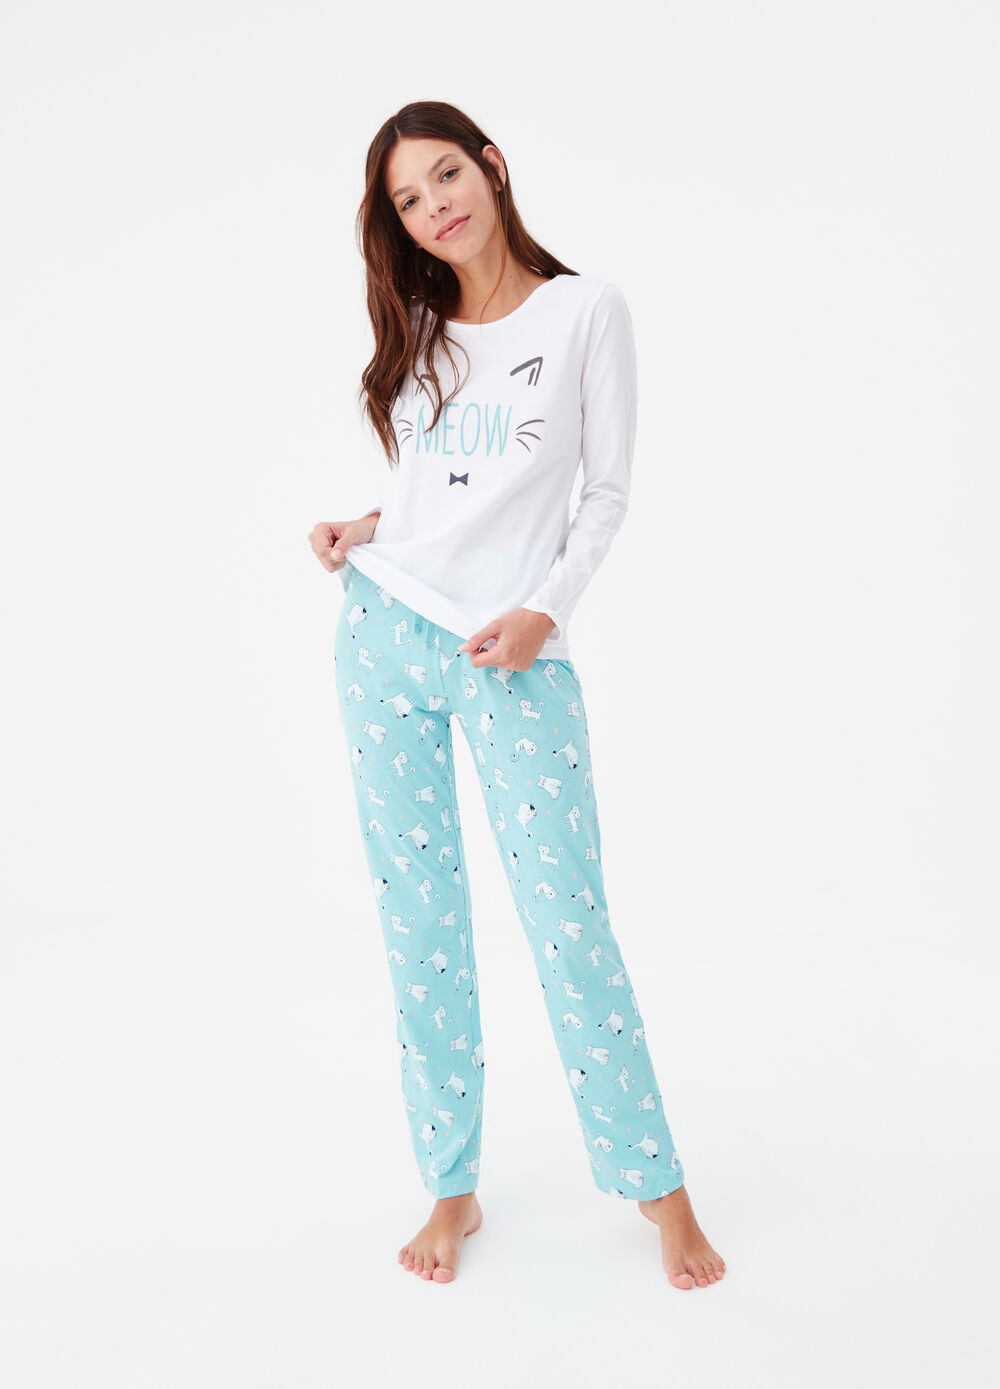 100% cotton pyjamas with kittens pattern